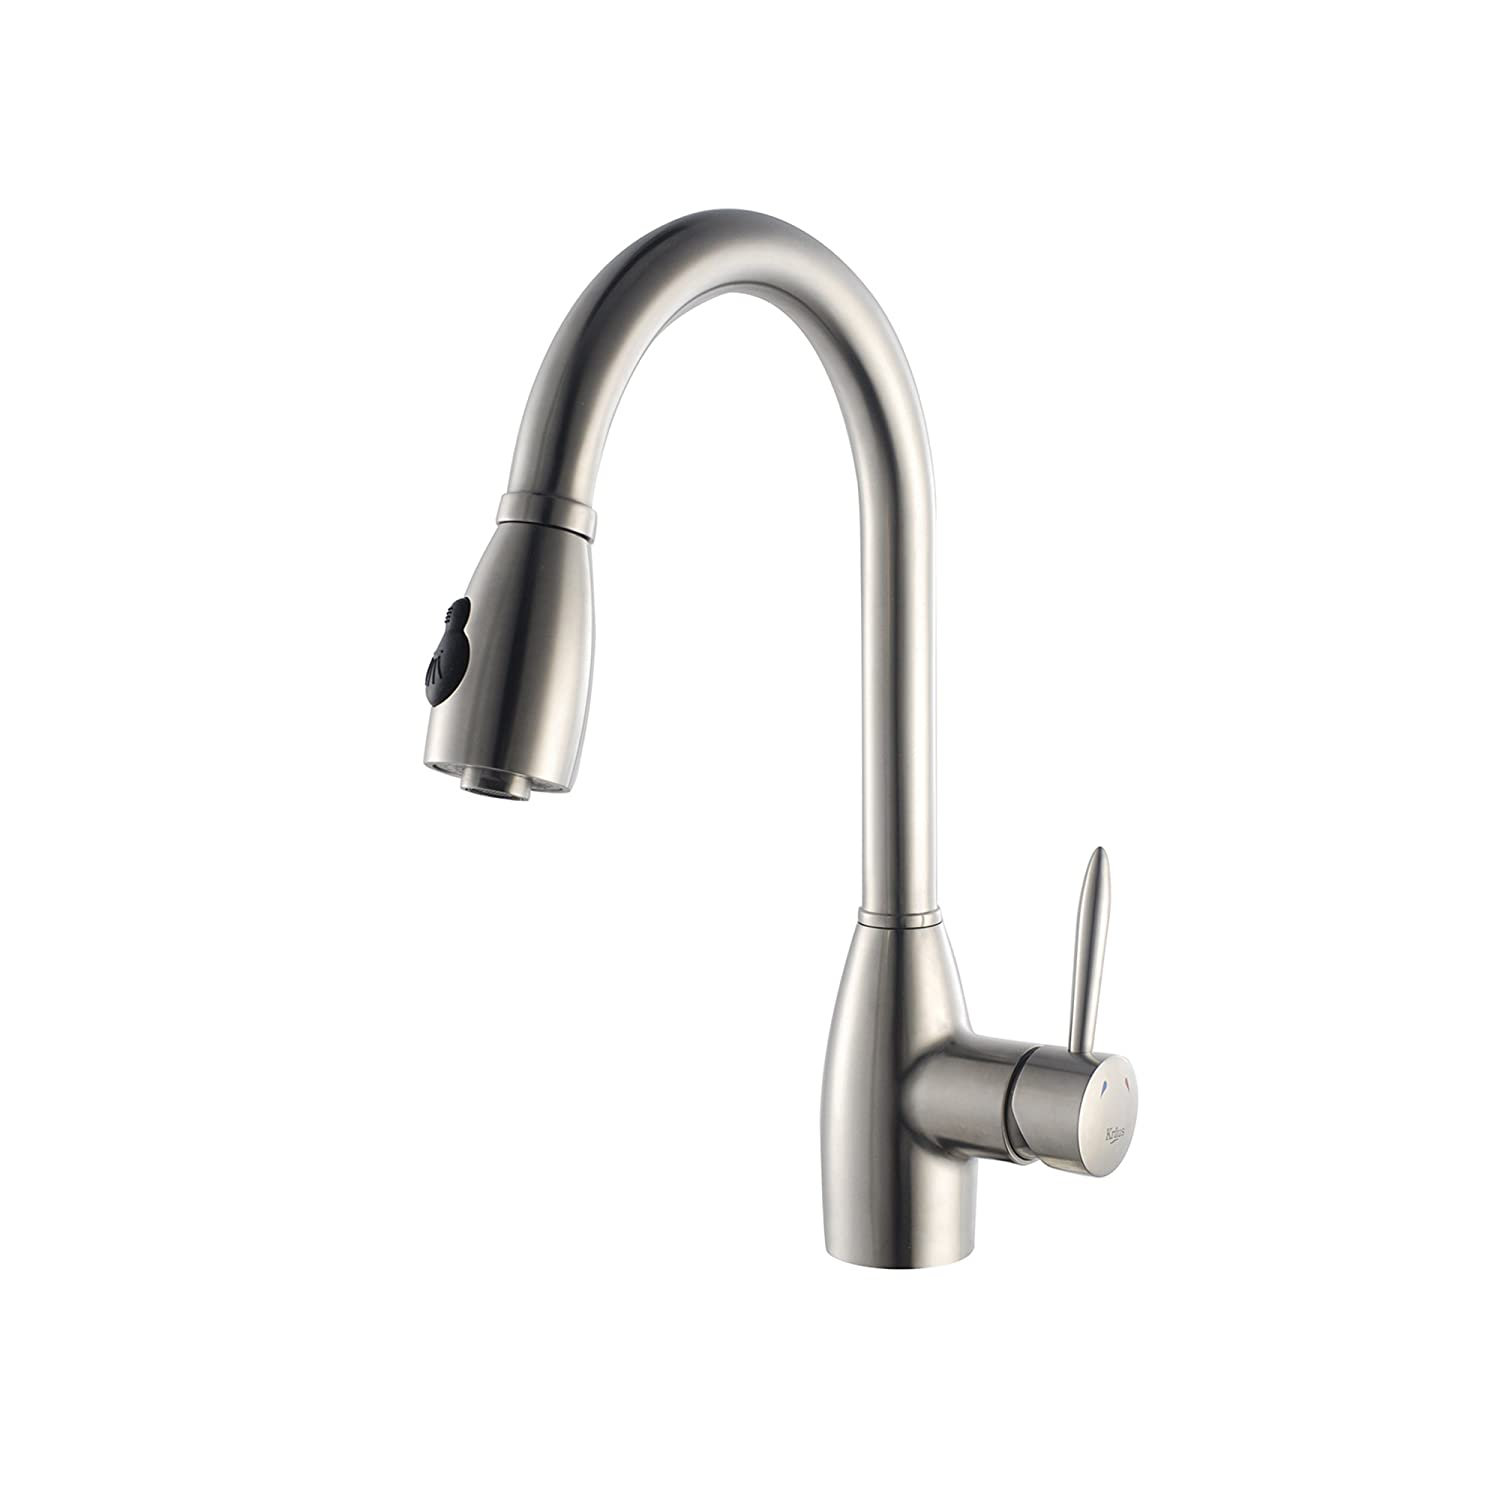 Best Pull Out Kitchen Faucets | Top 5 | FaucetsHub